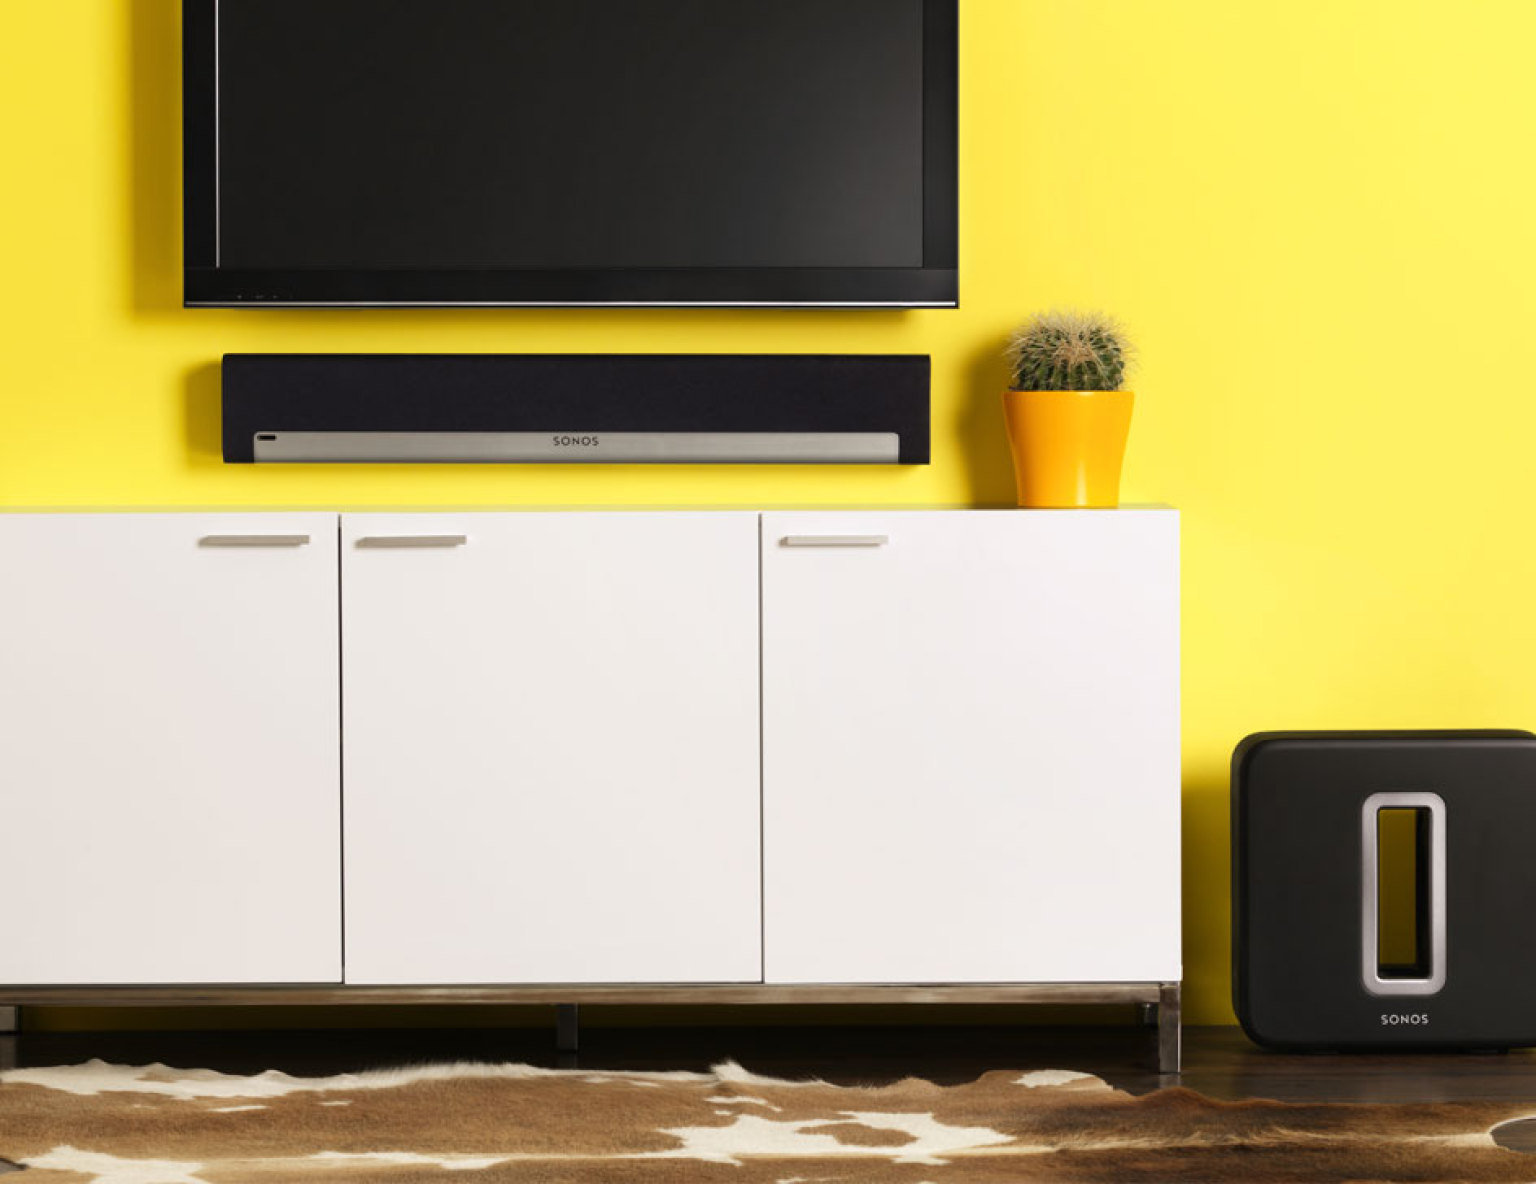 sonos sound bar hookup If you need to know how to hook up sonos speakers to your tv, read on to learn what to do different speakers connect in different ways.